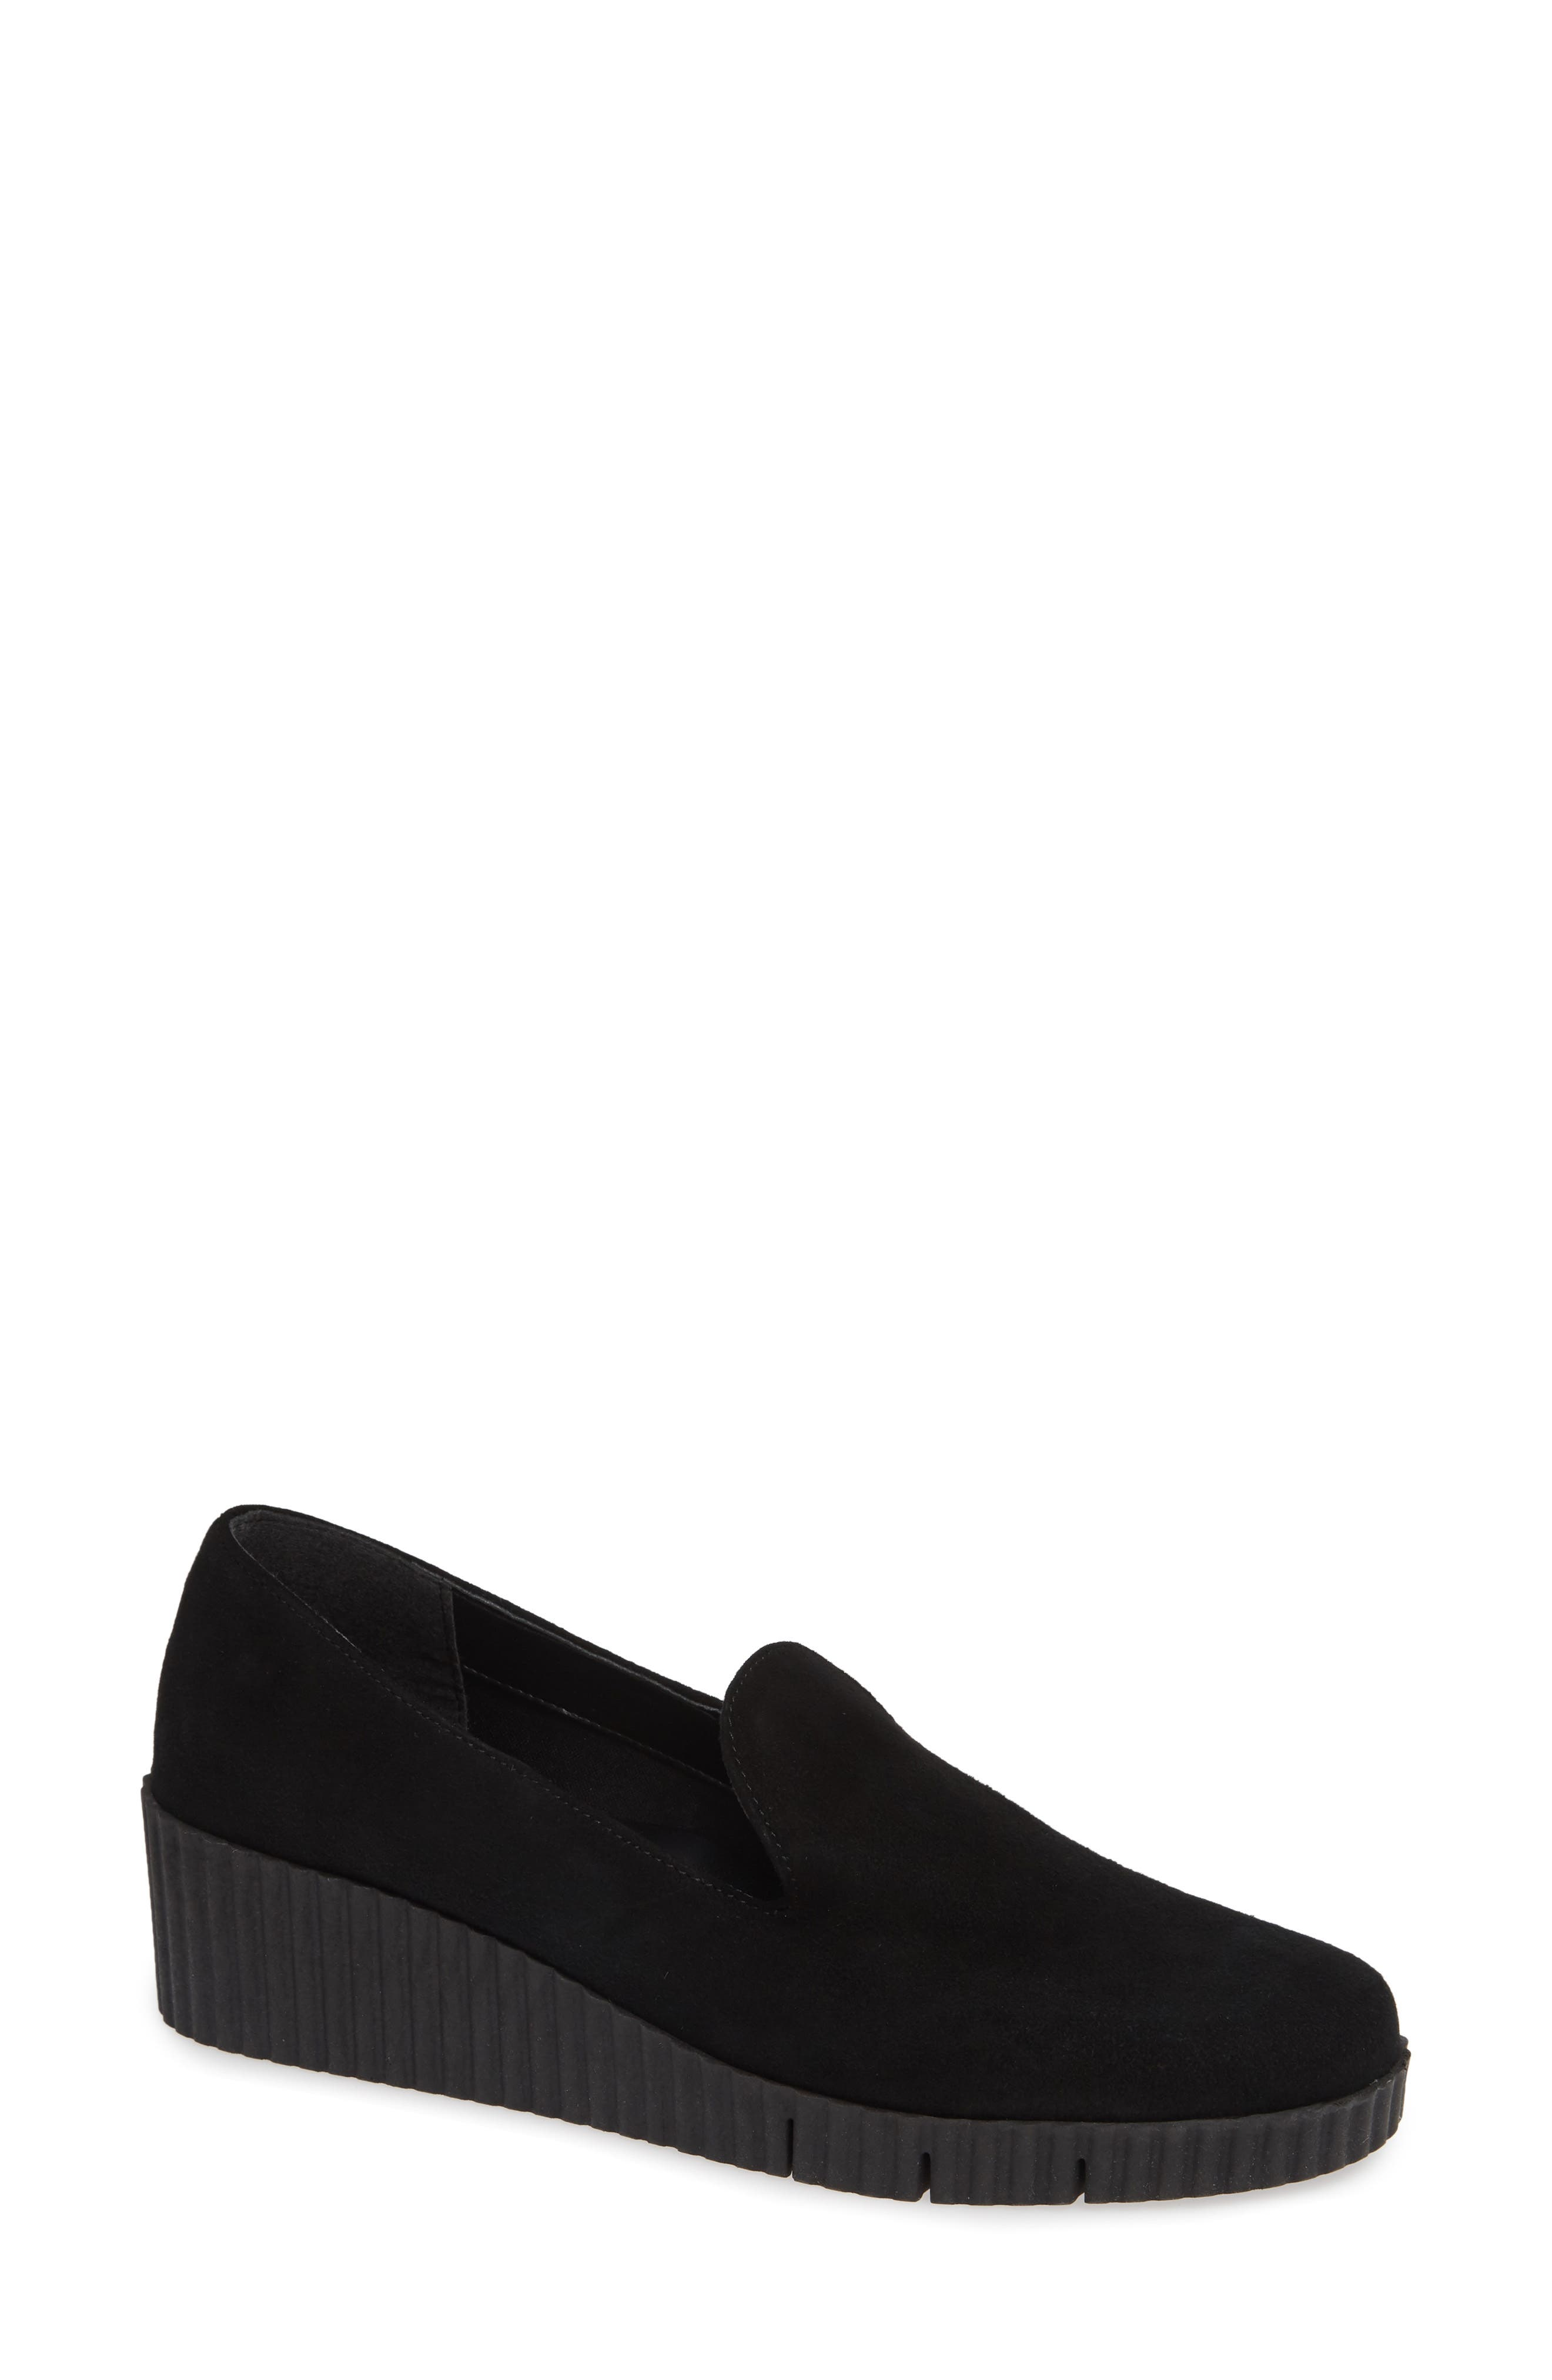 Fast Times Loafer,                         Main,                         color, BLACK SUEDE